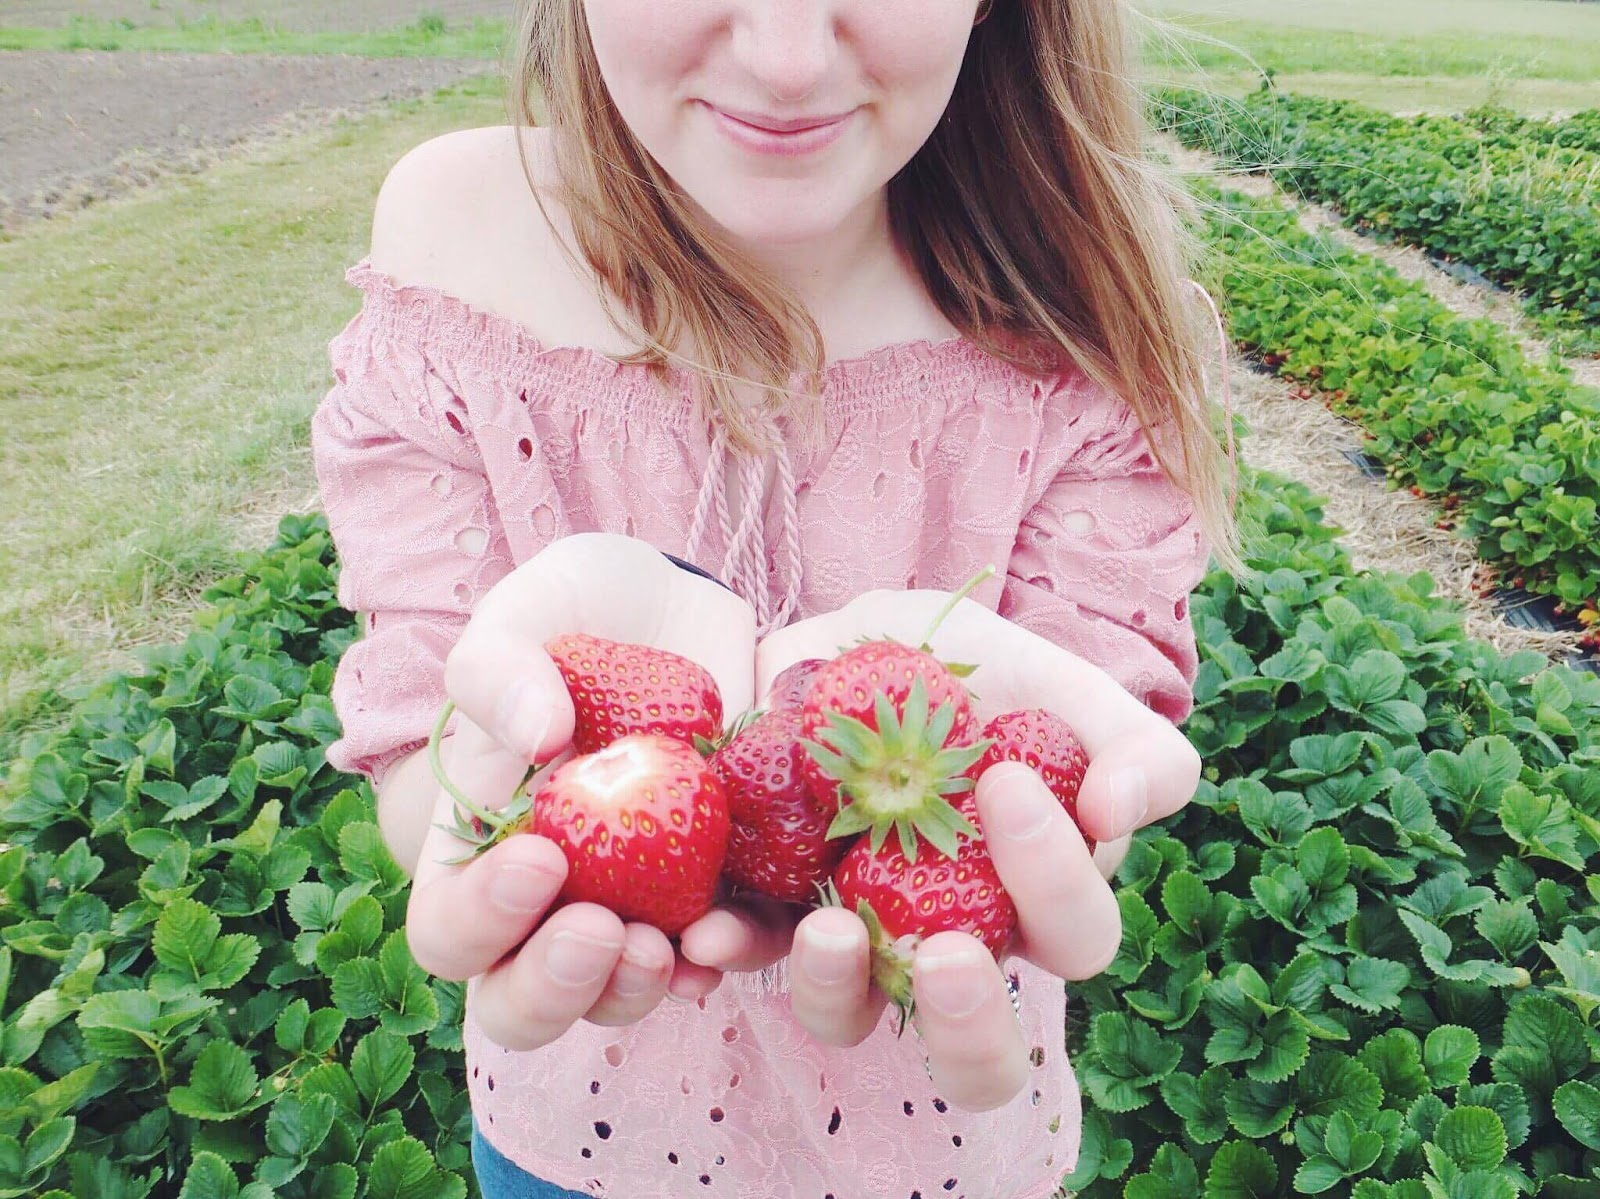 Bethany-Alice-Webb-Handful-Of-Strawberries